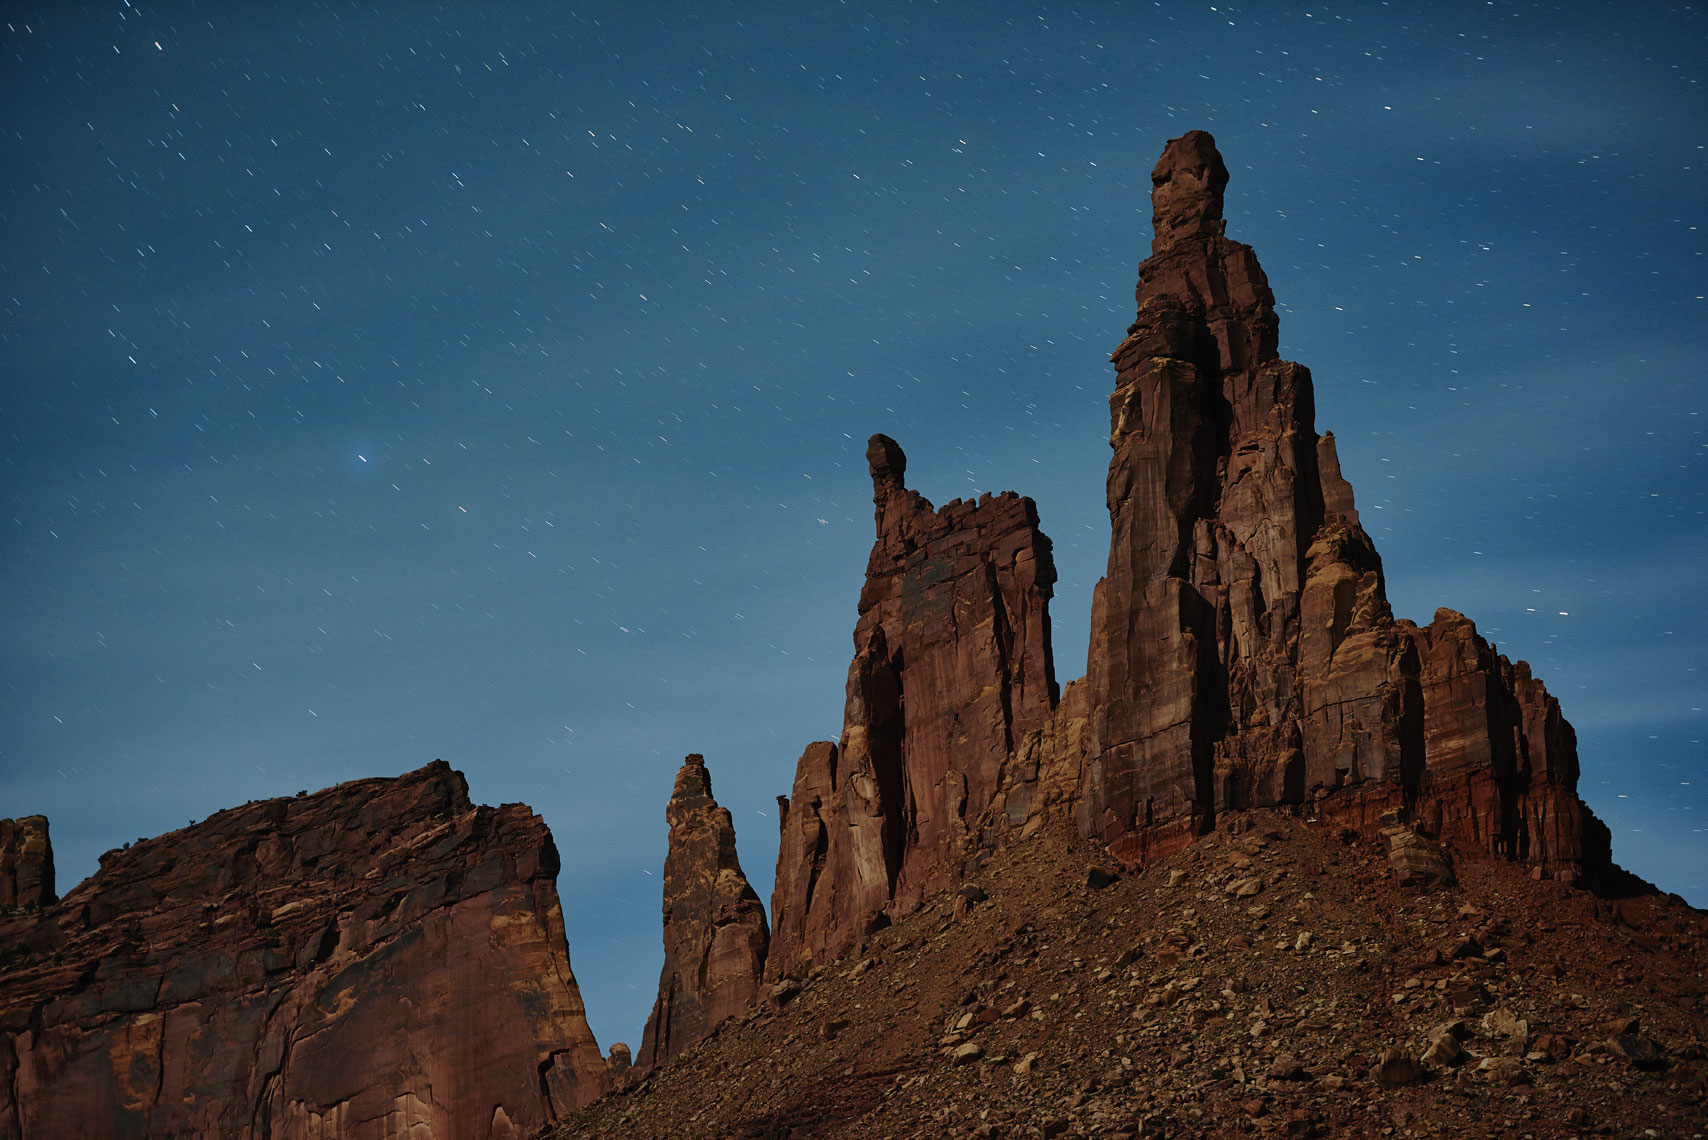 RD_141030_MOAB_8002